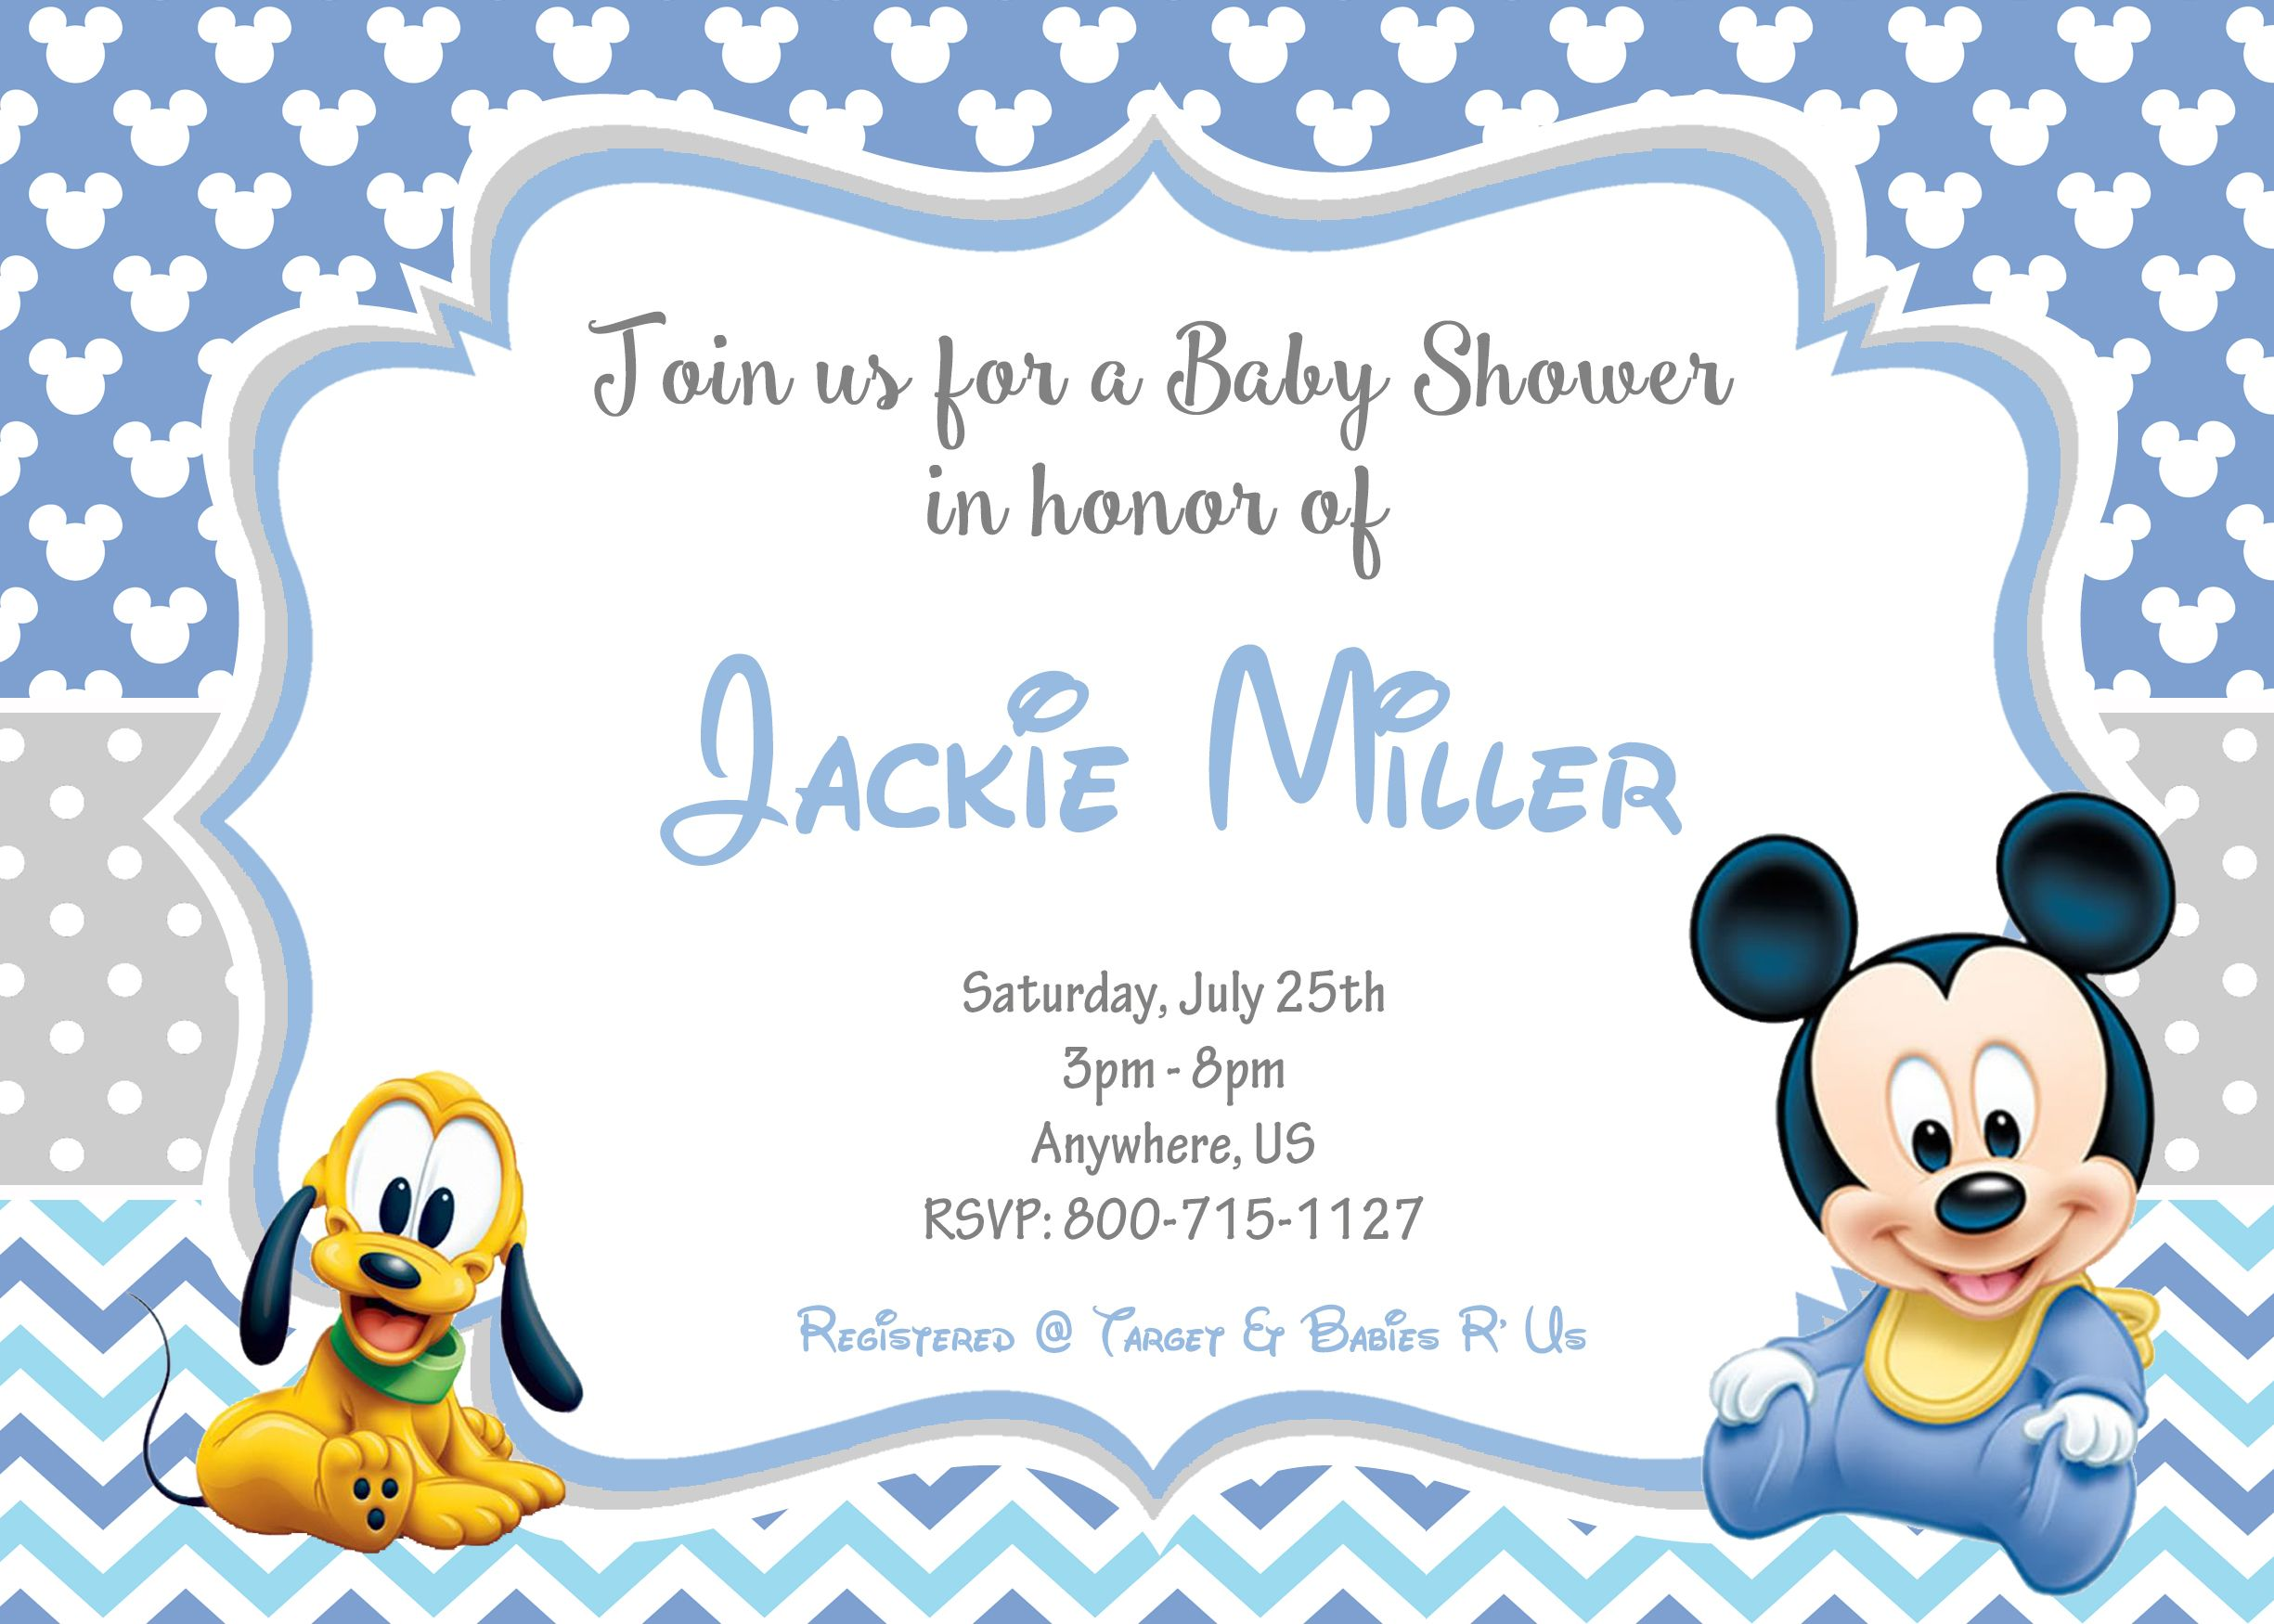 Pin by Party Express Invitations, Inc. on Baby Shower Invitation and ...